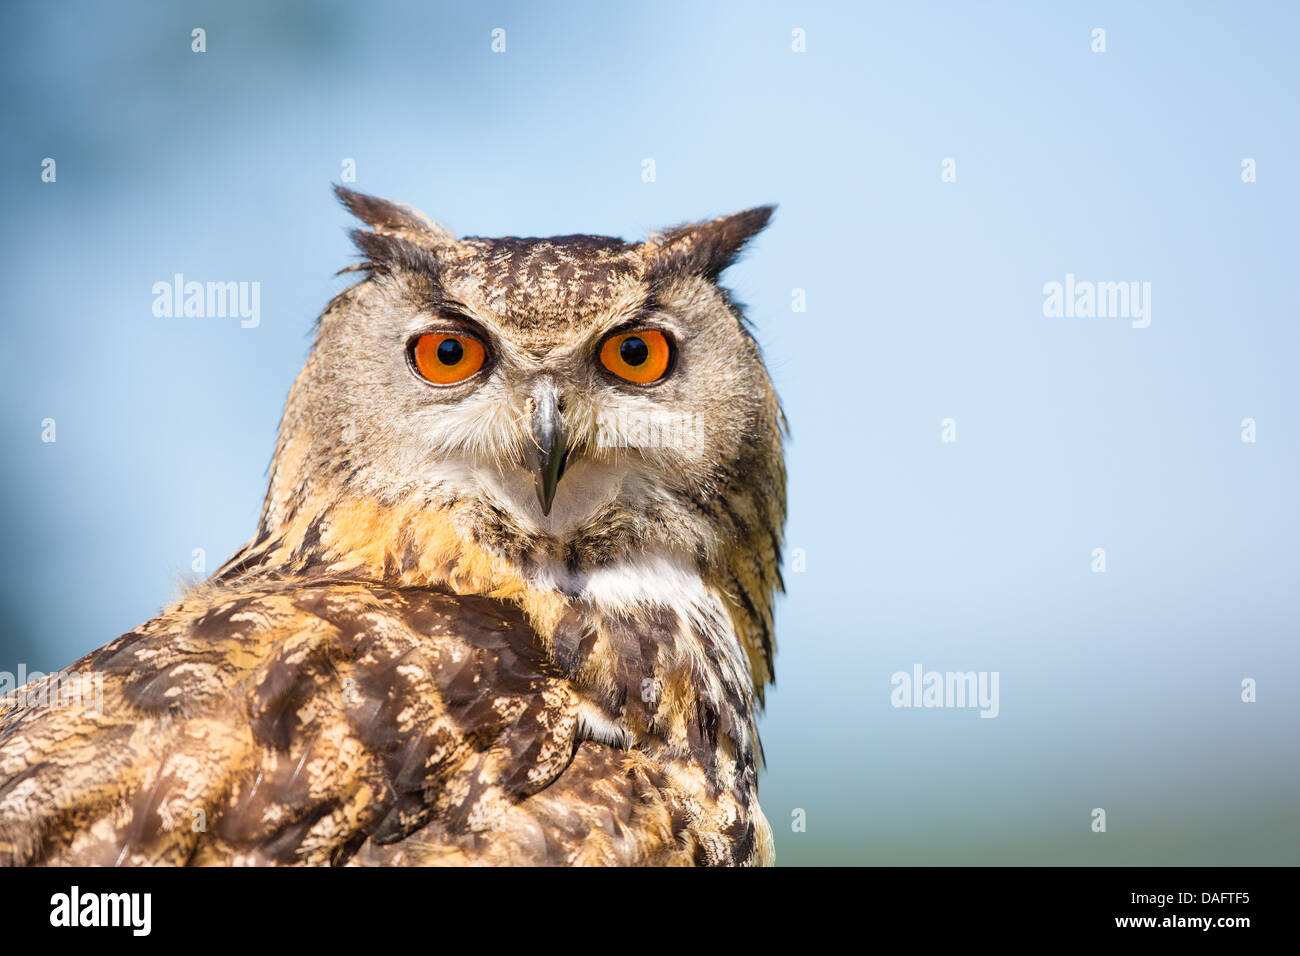 Close-up of a Eurasian Eagle- owl (Bubo bubo) showing head against a blue sky and cloud background - Stock Image